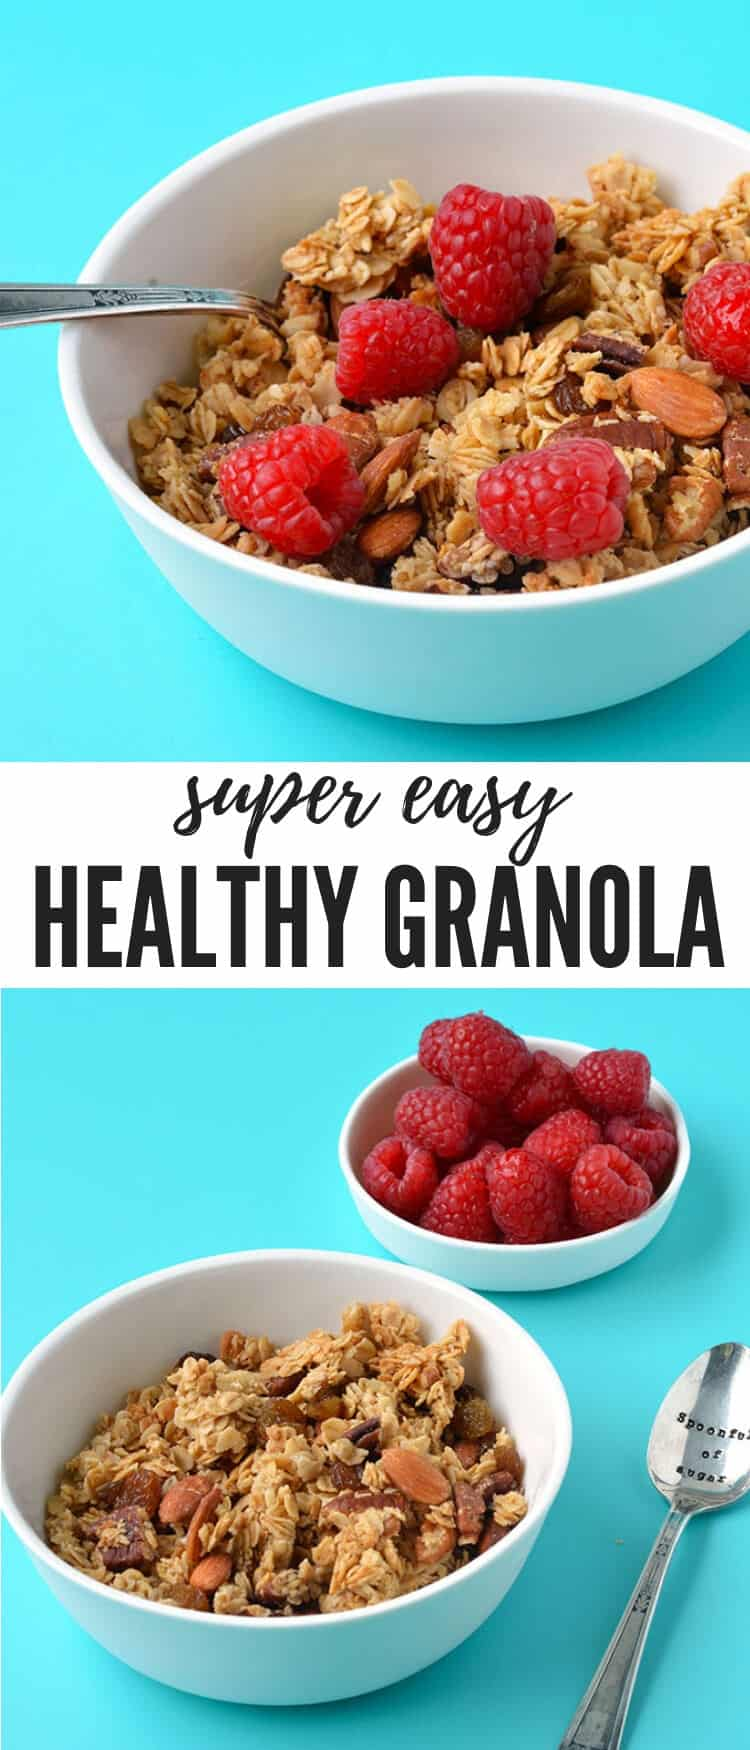 A deliciously easy granola made with just six ingredients, perfect for breakfast or a tasty snack. This toasted granola is packed with pecans, almonds and raisins and flavoured with maple syrup.  Find the easy recipe on sweetestmenu.com #granola #nuts #healthy #breakfast